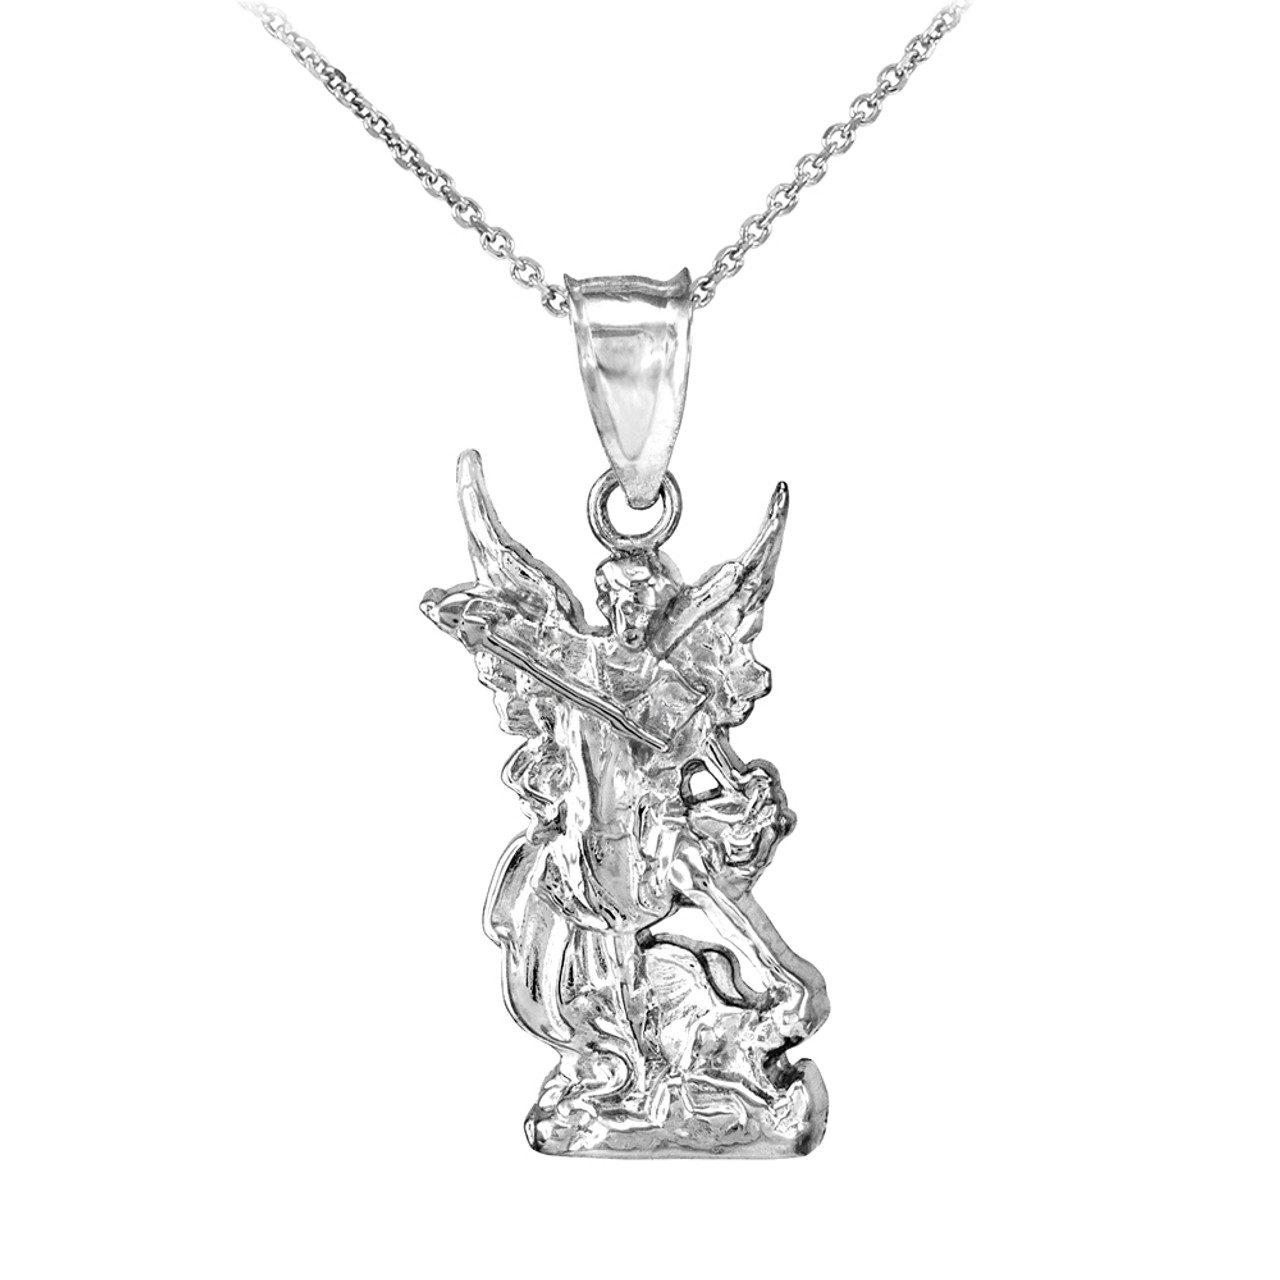 deal pendant st the necklace archangel image product products michael michaels catholic